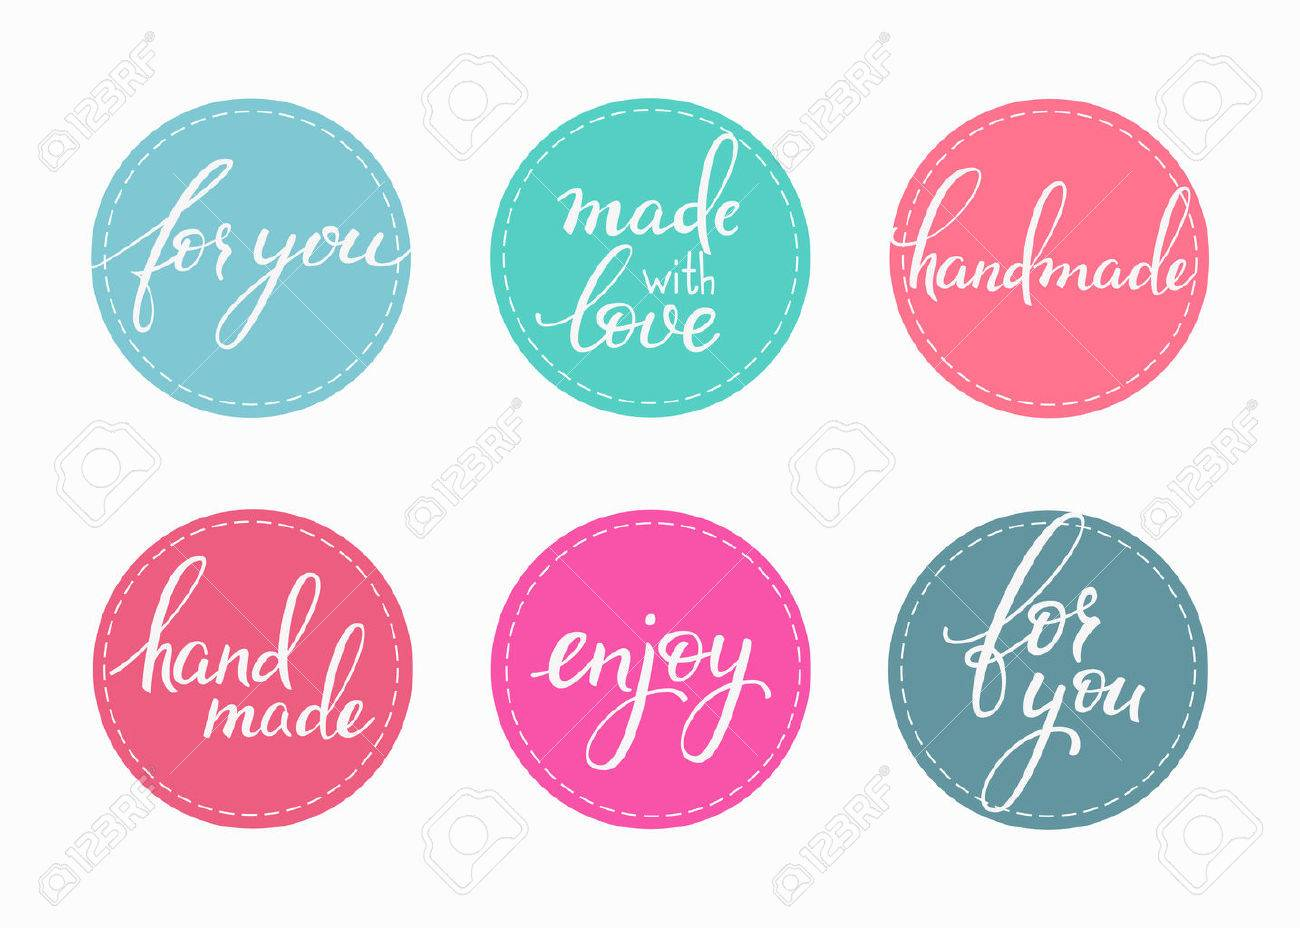 Handmade Sticker Lettering Set Calligraphy Label Graphic Design